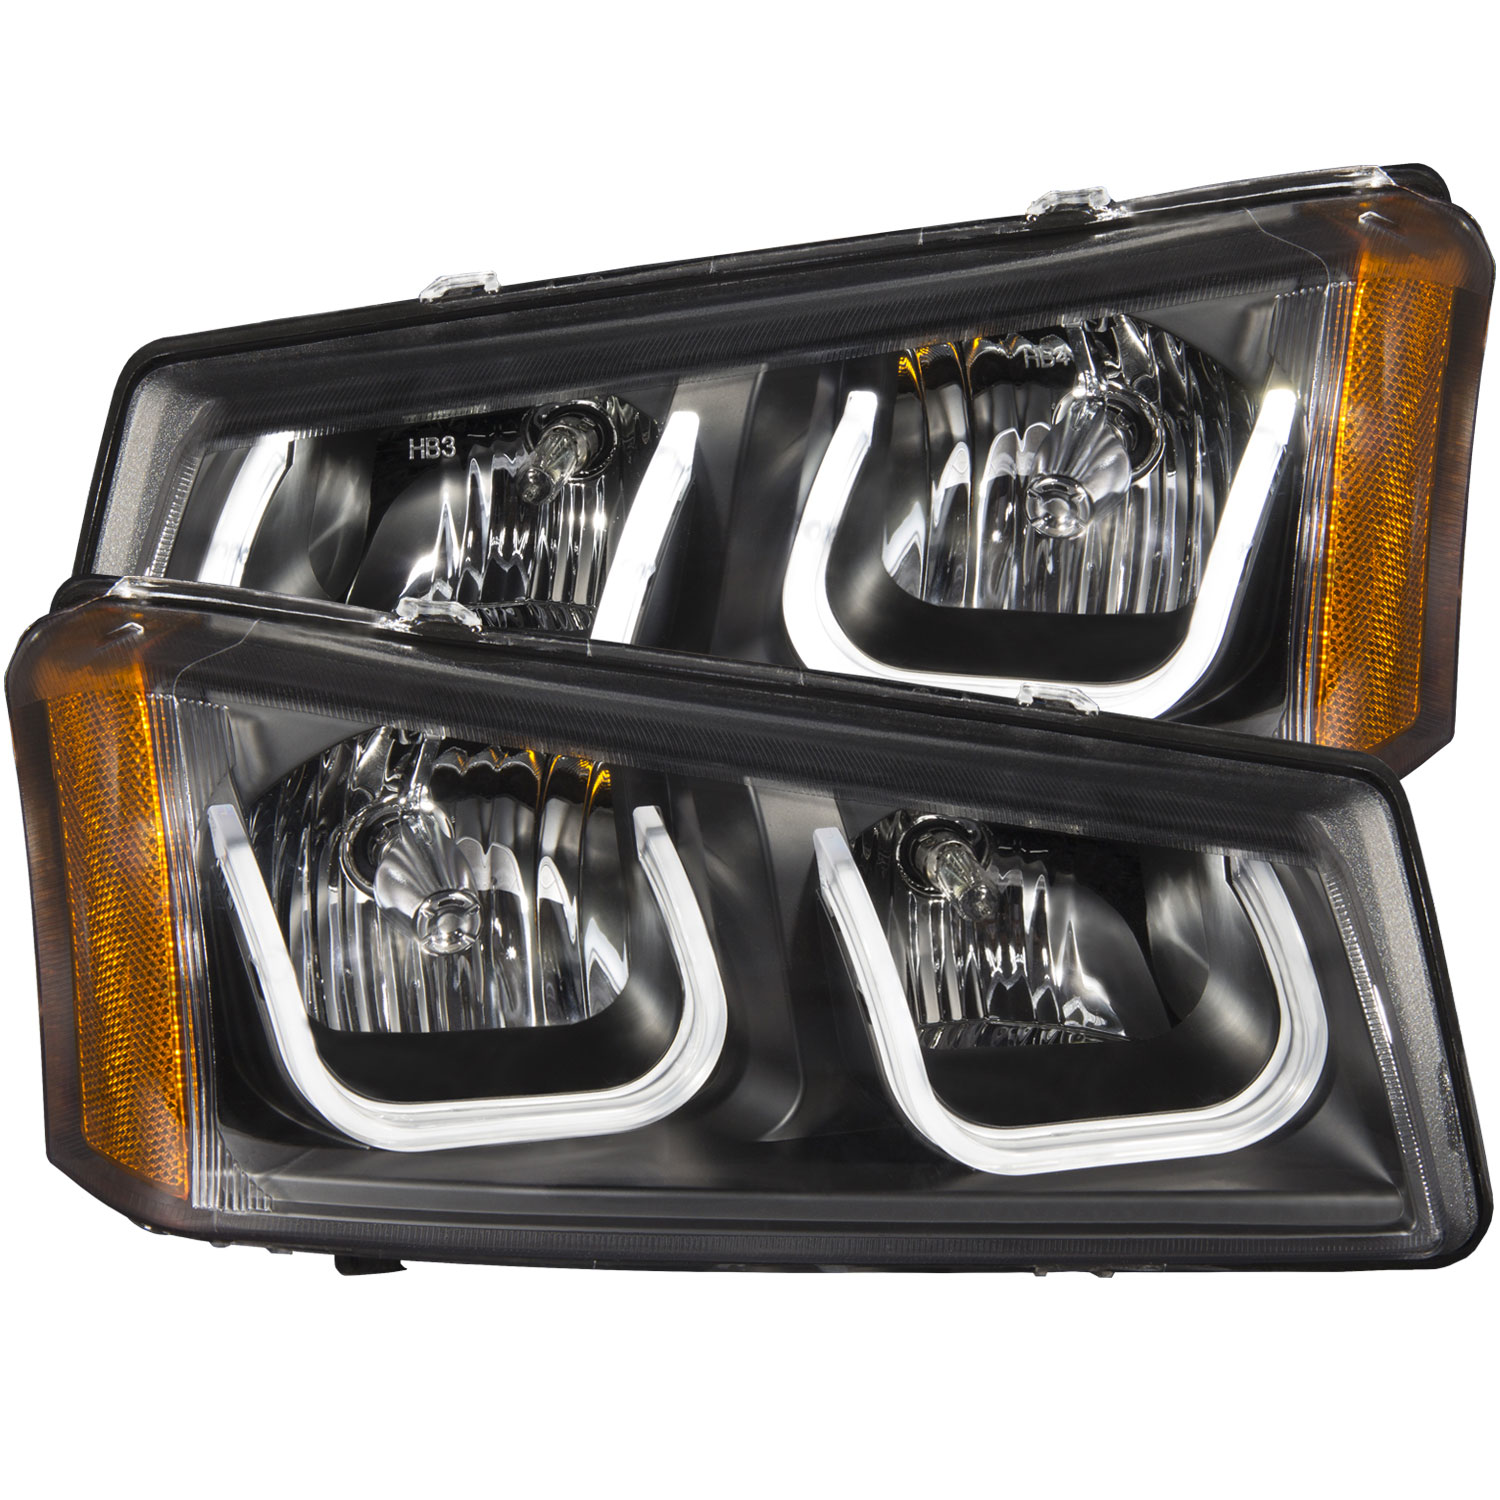 Anzo 111312 | ANZO USA Chevrolet Silverado Projector Headlights W/ U-Bar Black; 2003-2006